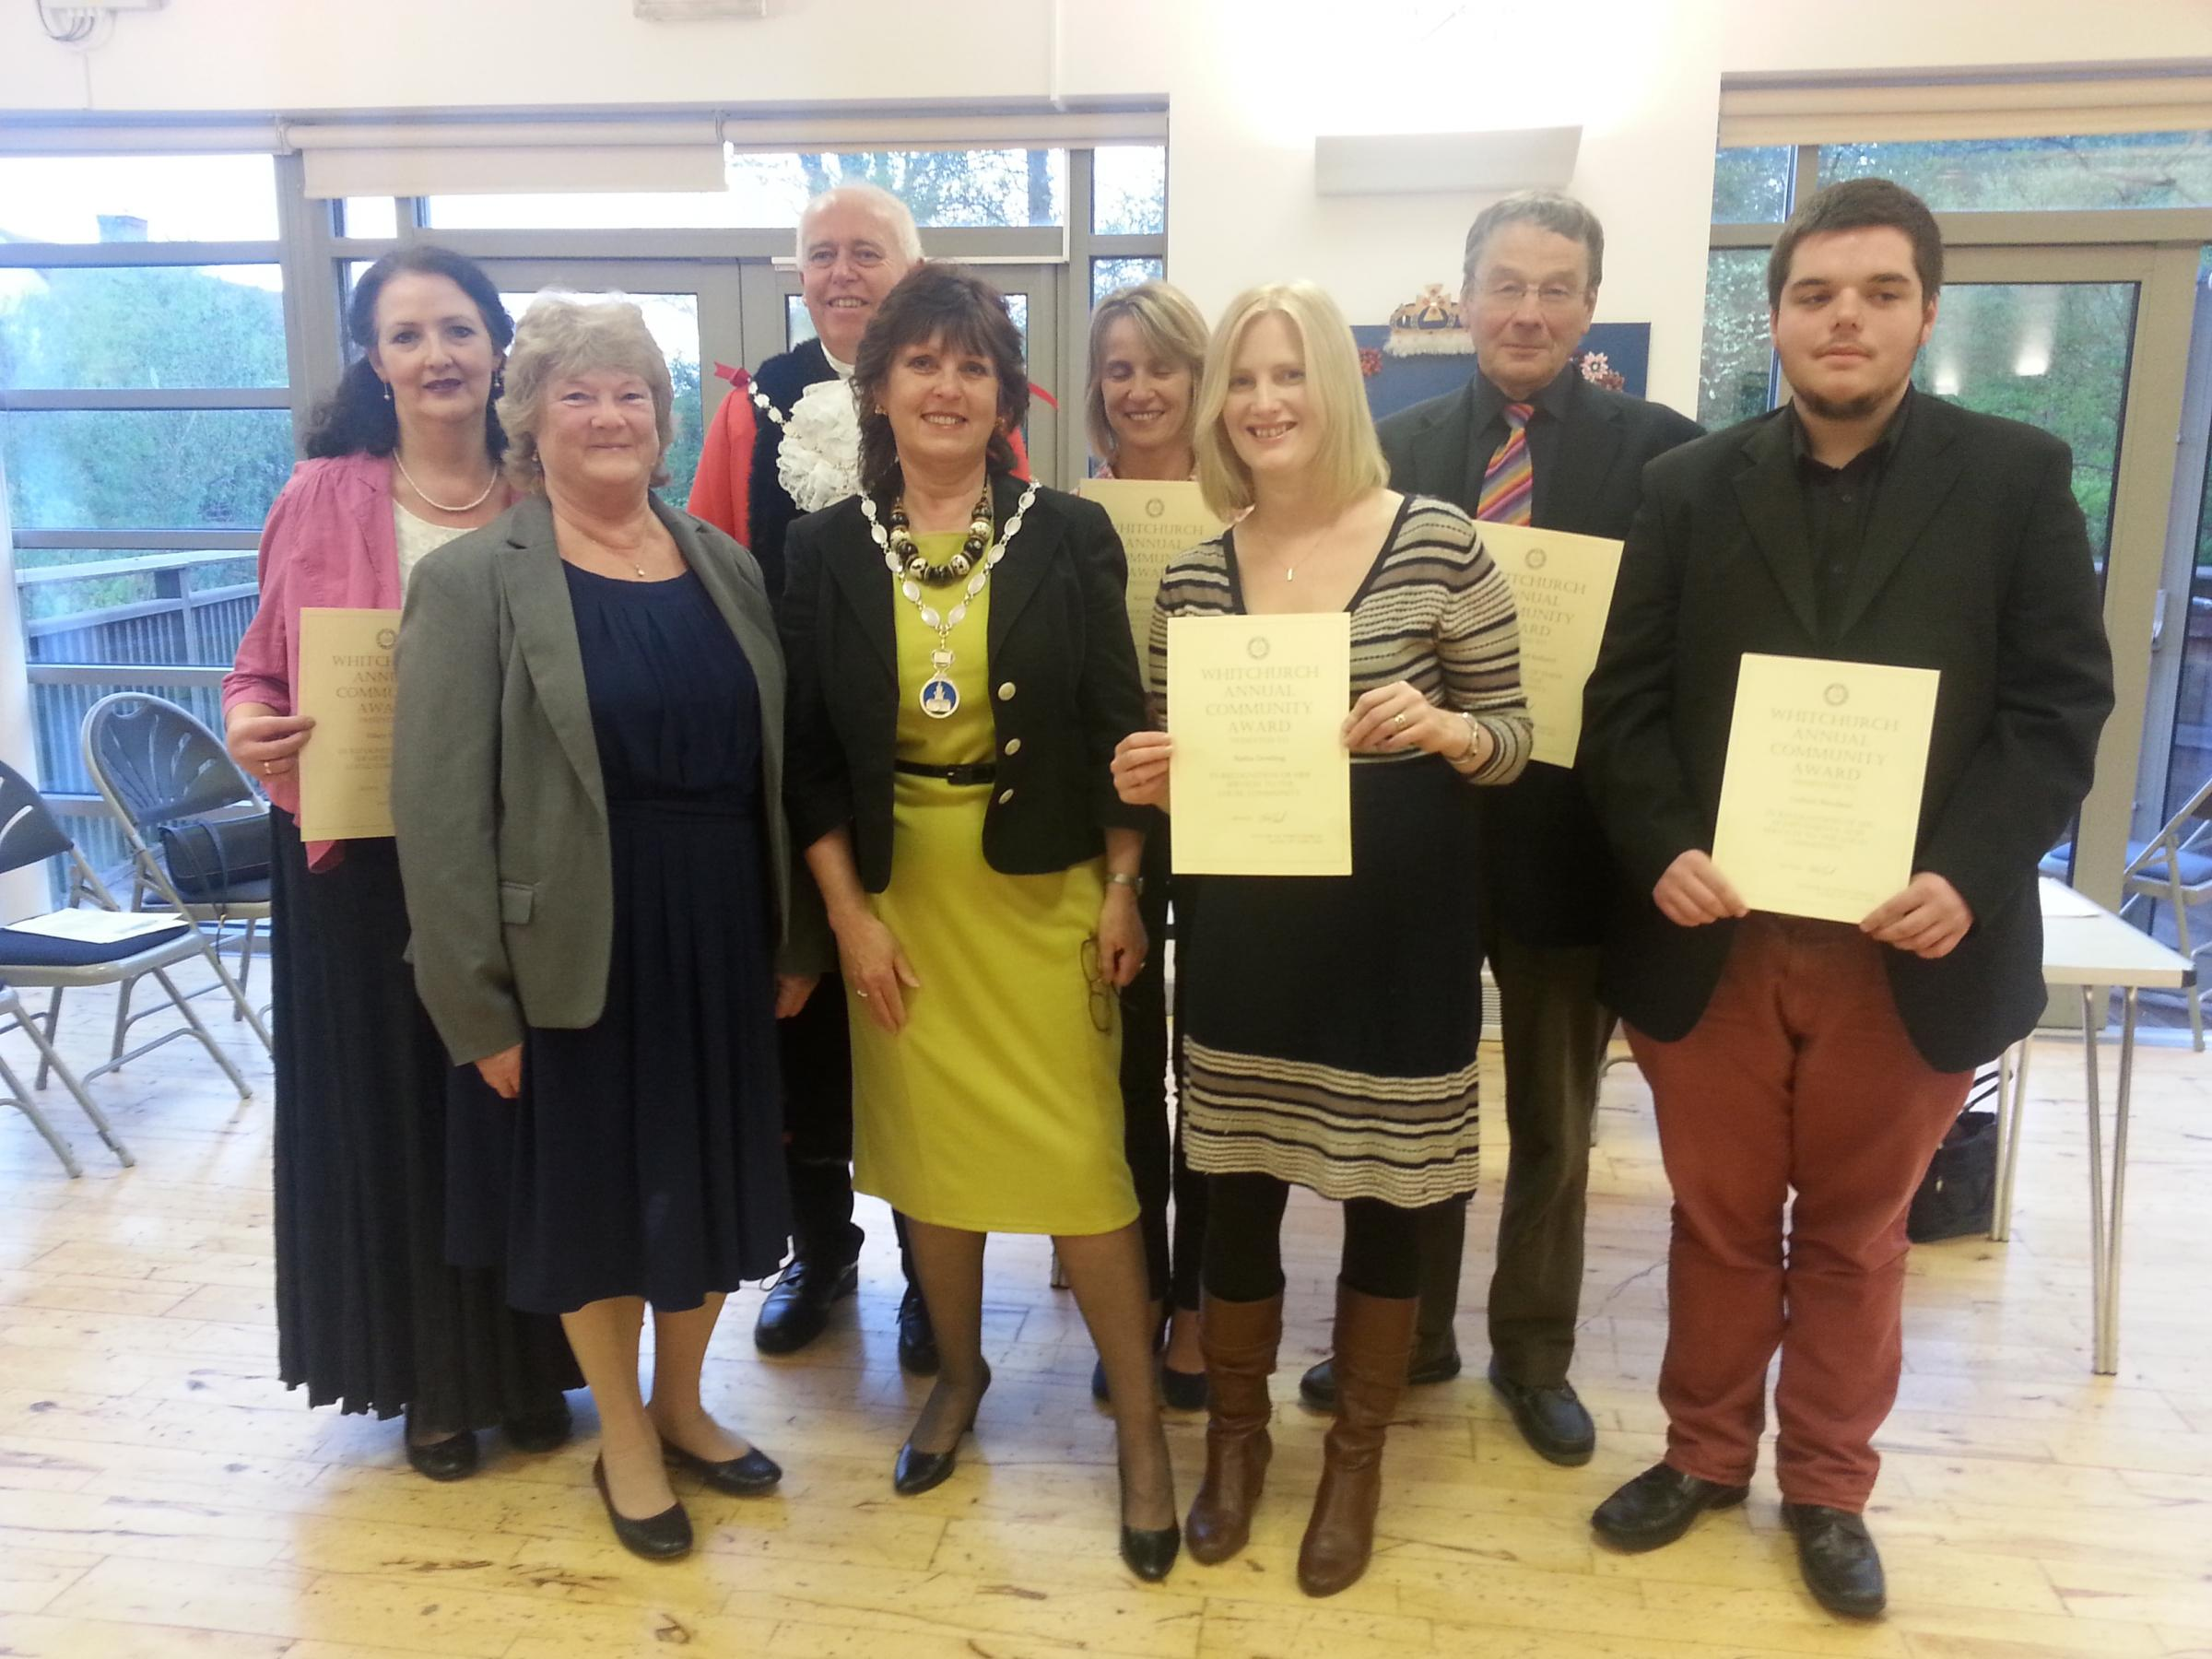 The award winners with the Mayor and Mayoress of Whitchurch